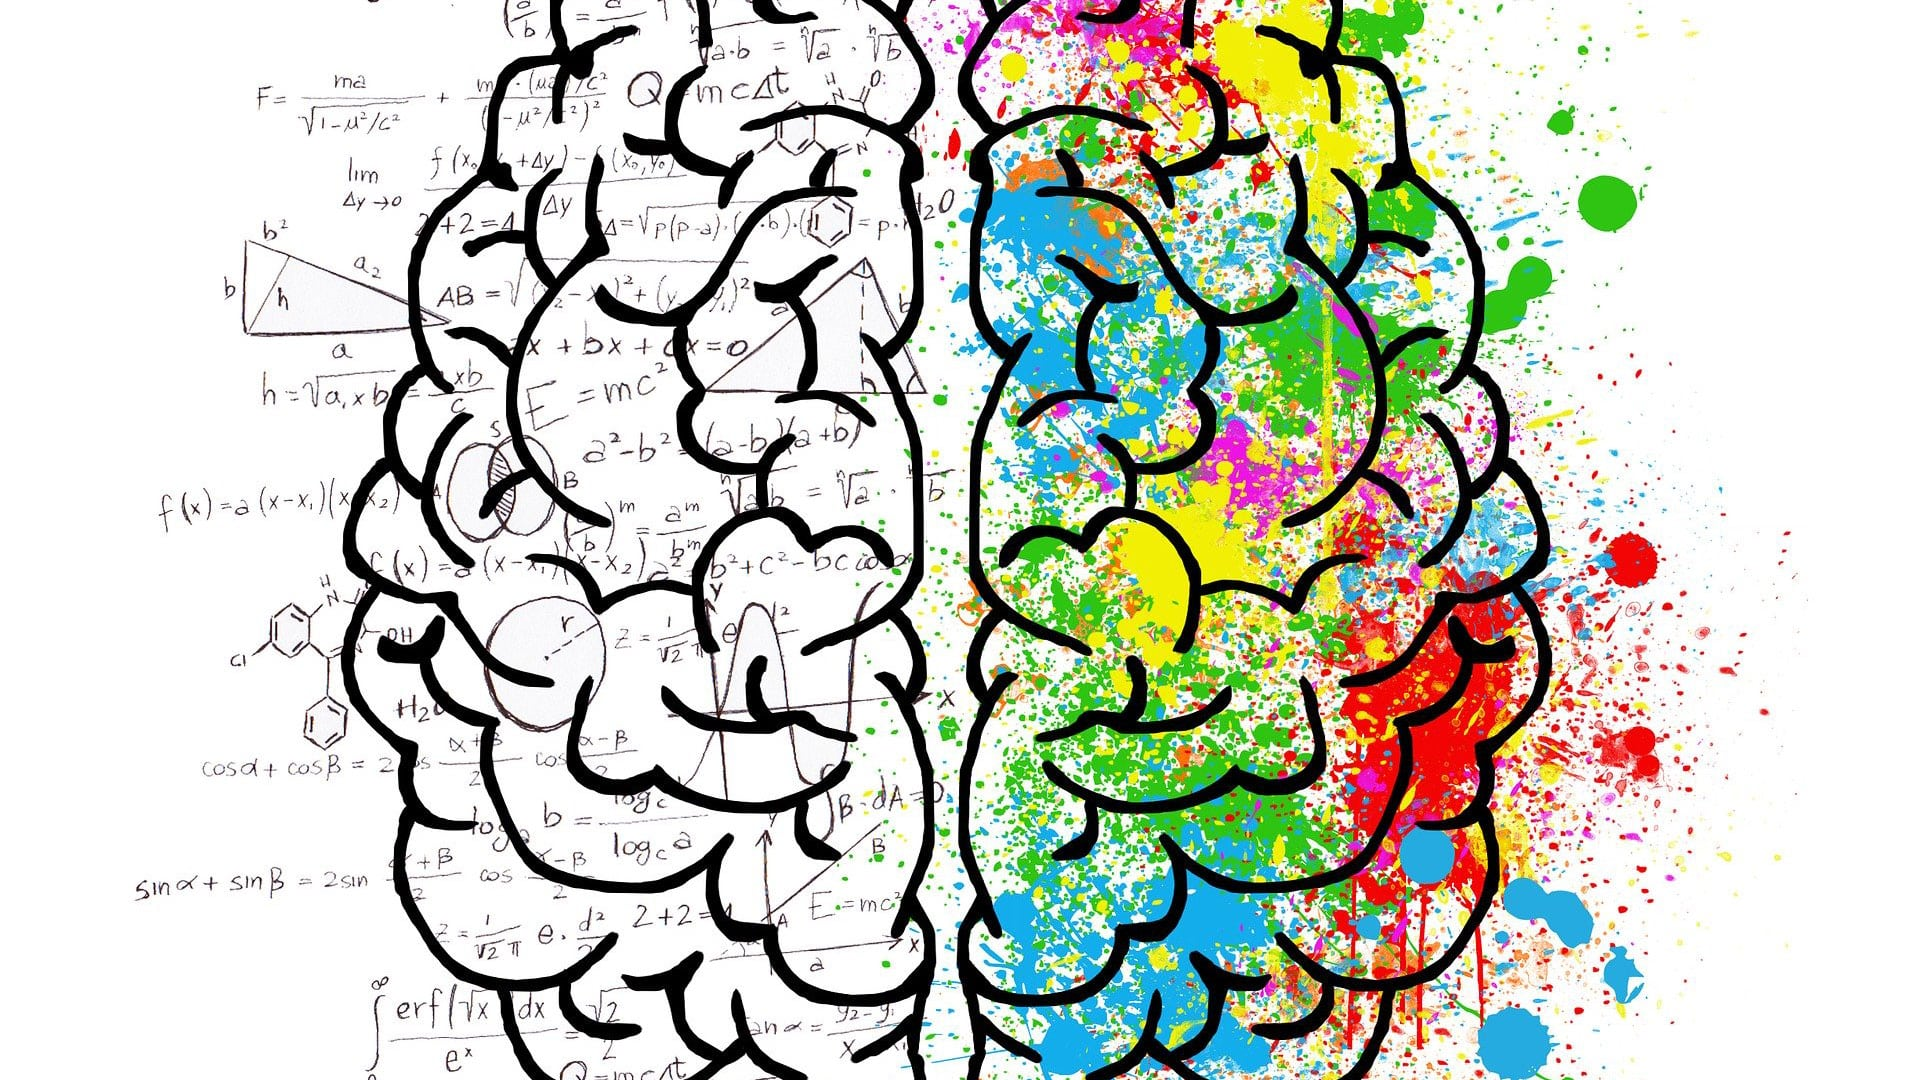 graphic of brain with overlaid formulas